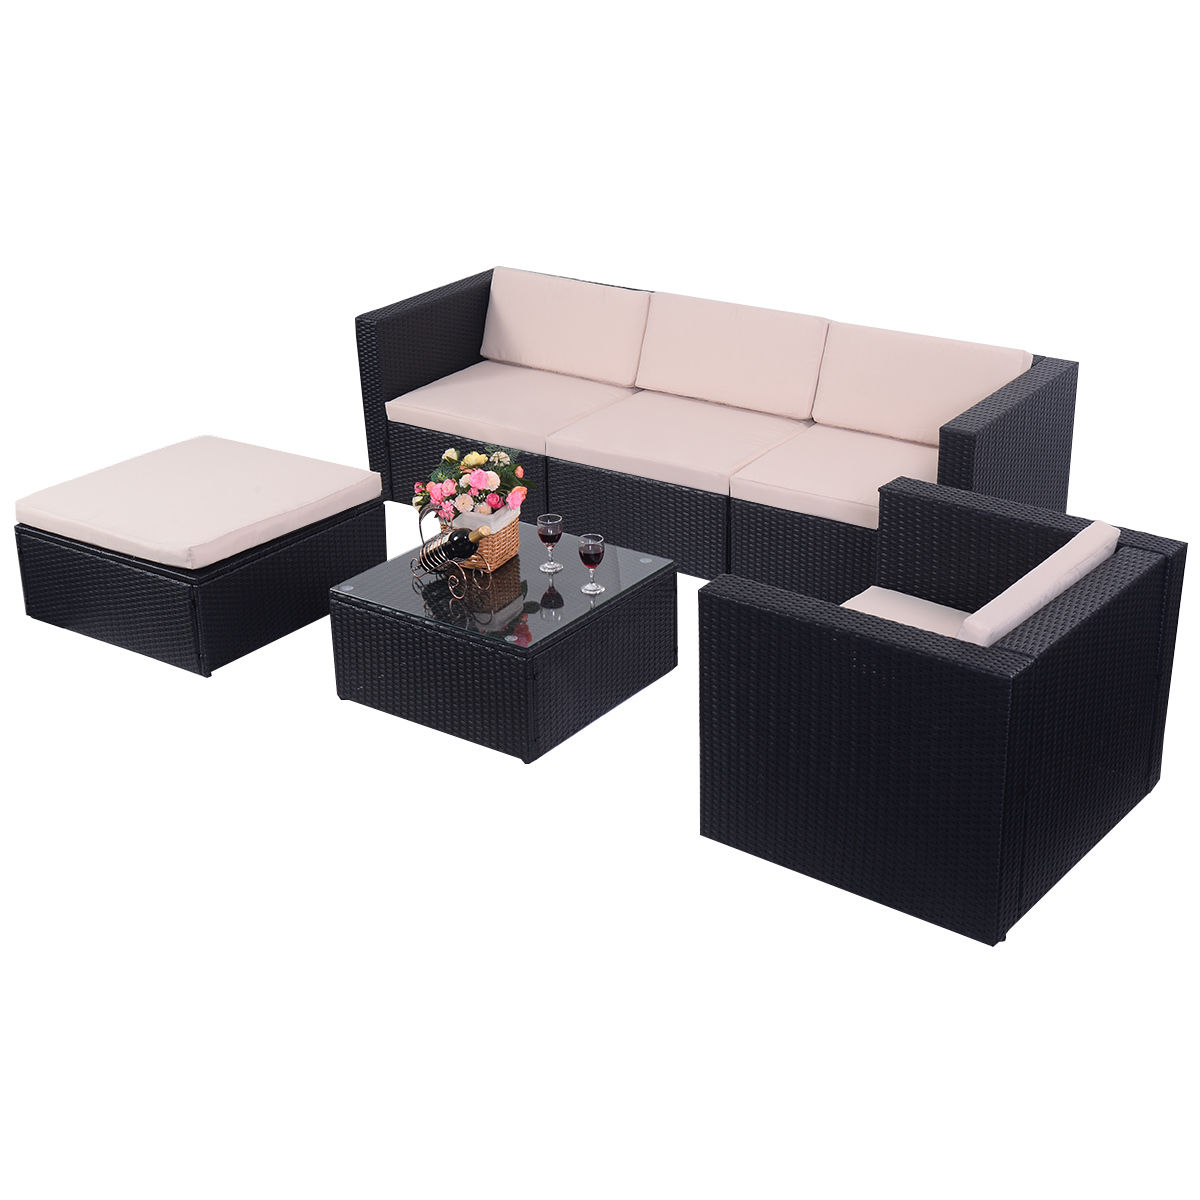 Costway 6 PCS Outdoor Patio Rattan Wicker Sectional Furniture Set Table Sofa Cushioned  sc 1 st  Walmart : wicker sectional patio furniture - Sectionals, Sofas & Couches